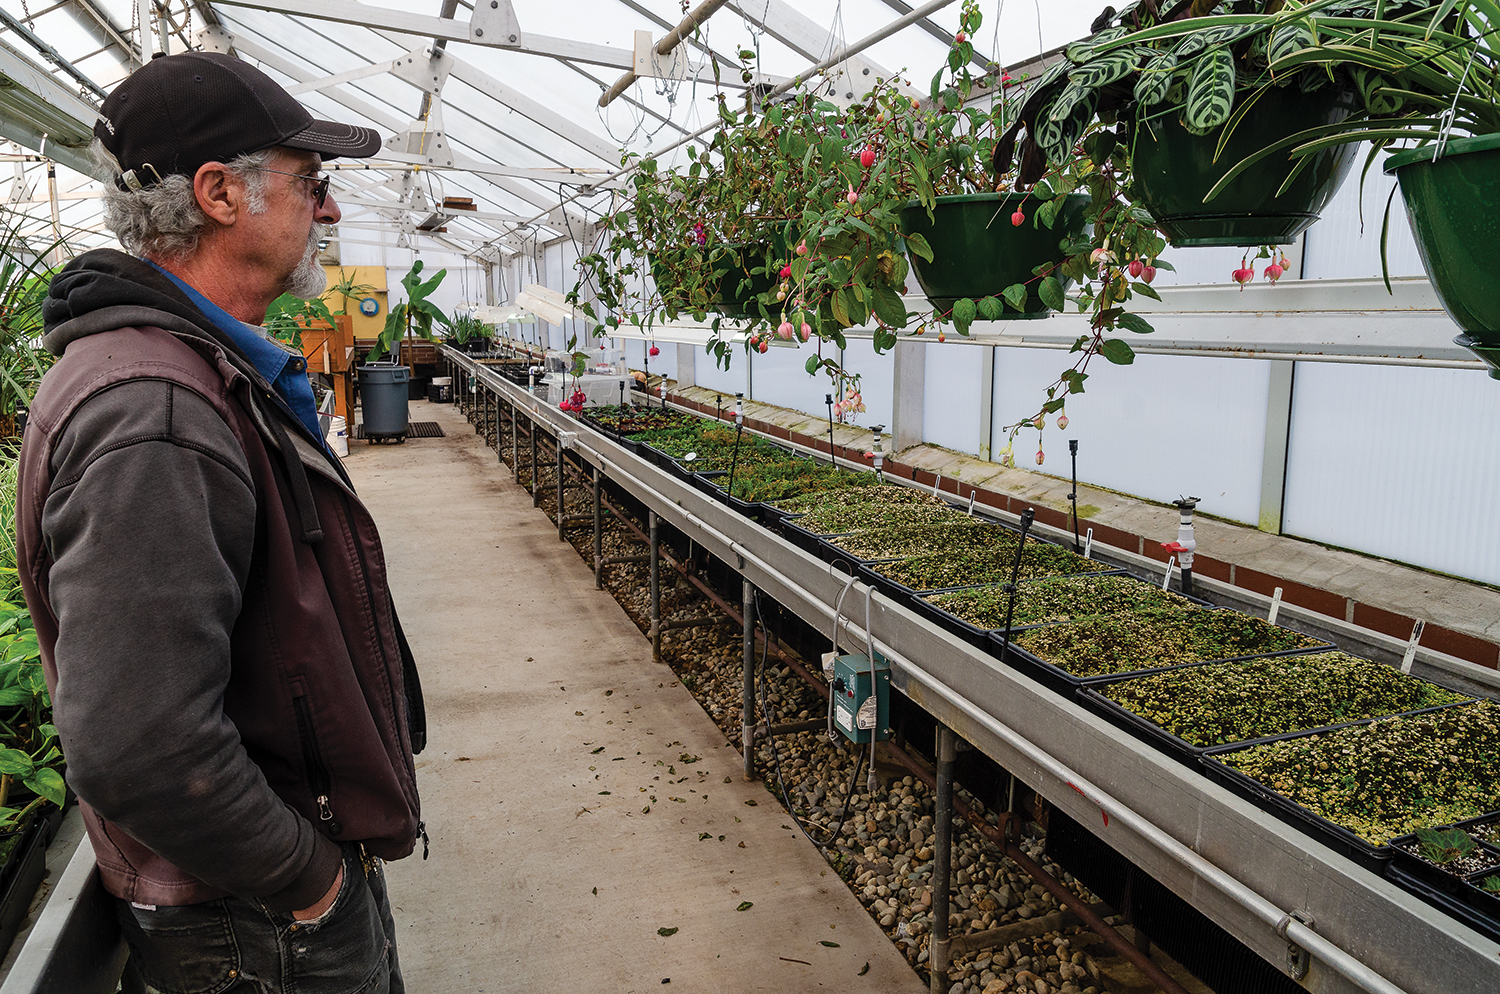 Grounds Department lead John Syson, surveys flowering plants and seedlings that will get transplanted outside the greenhouse in the springtime.